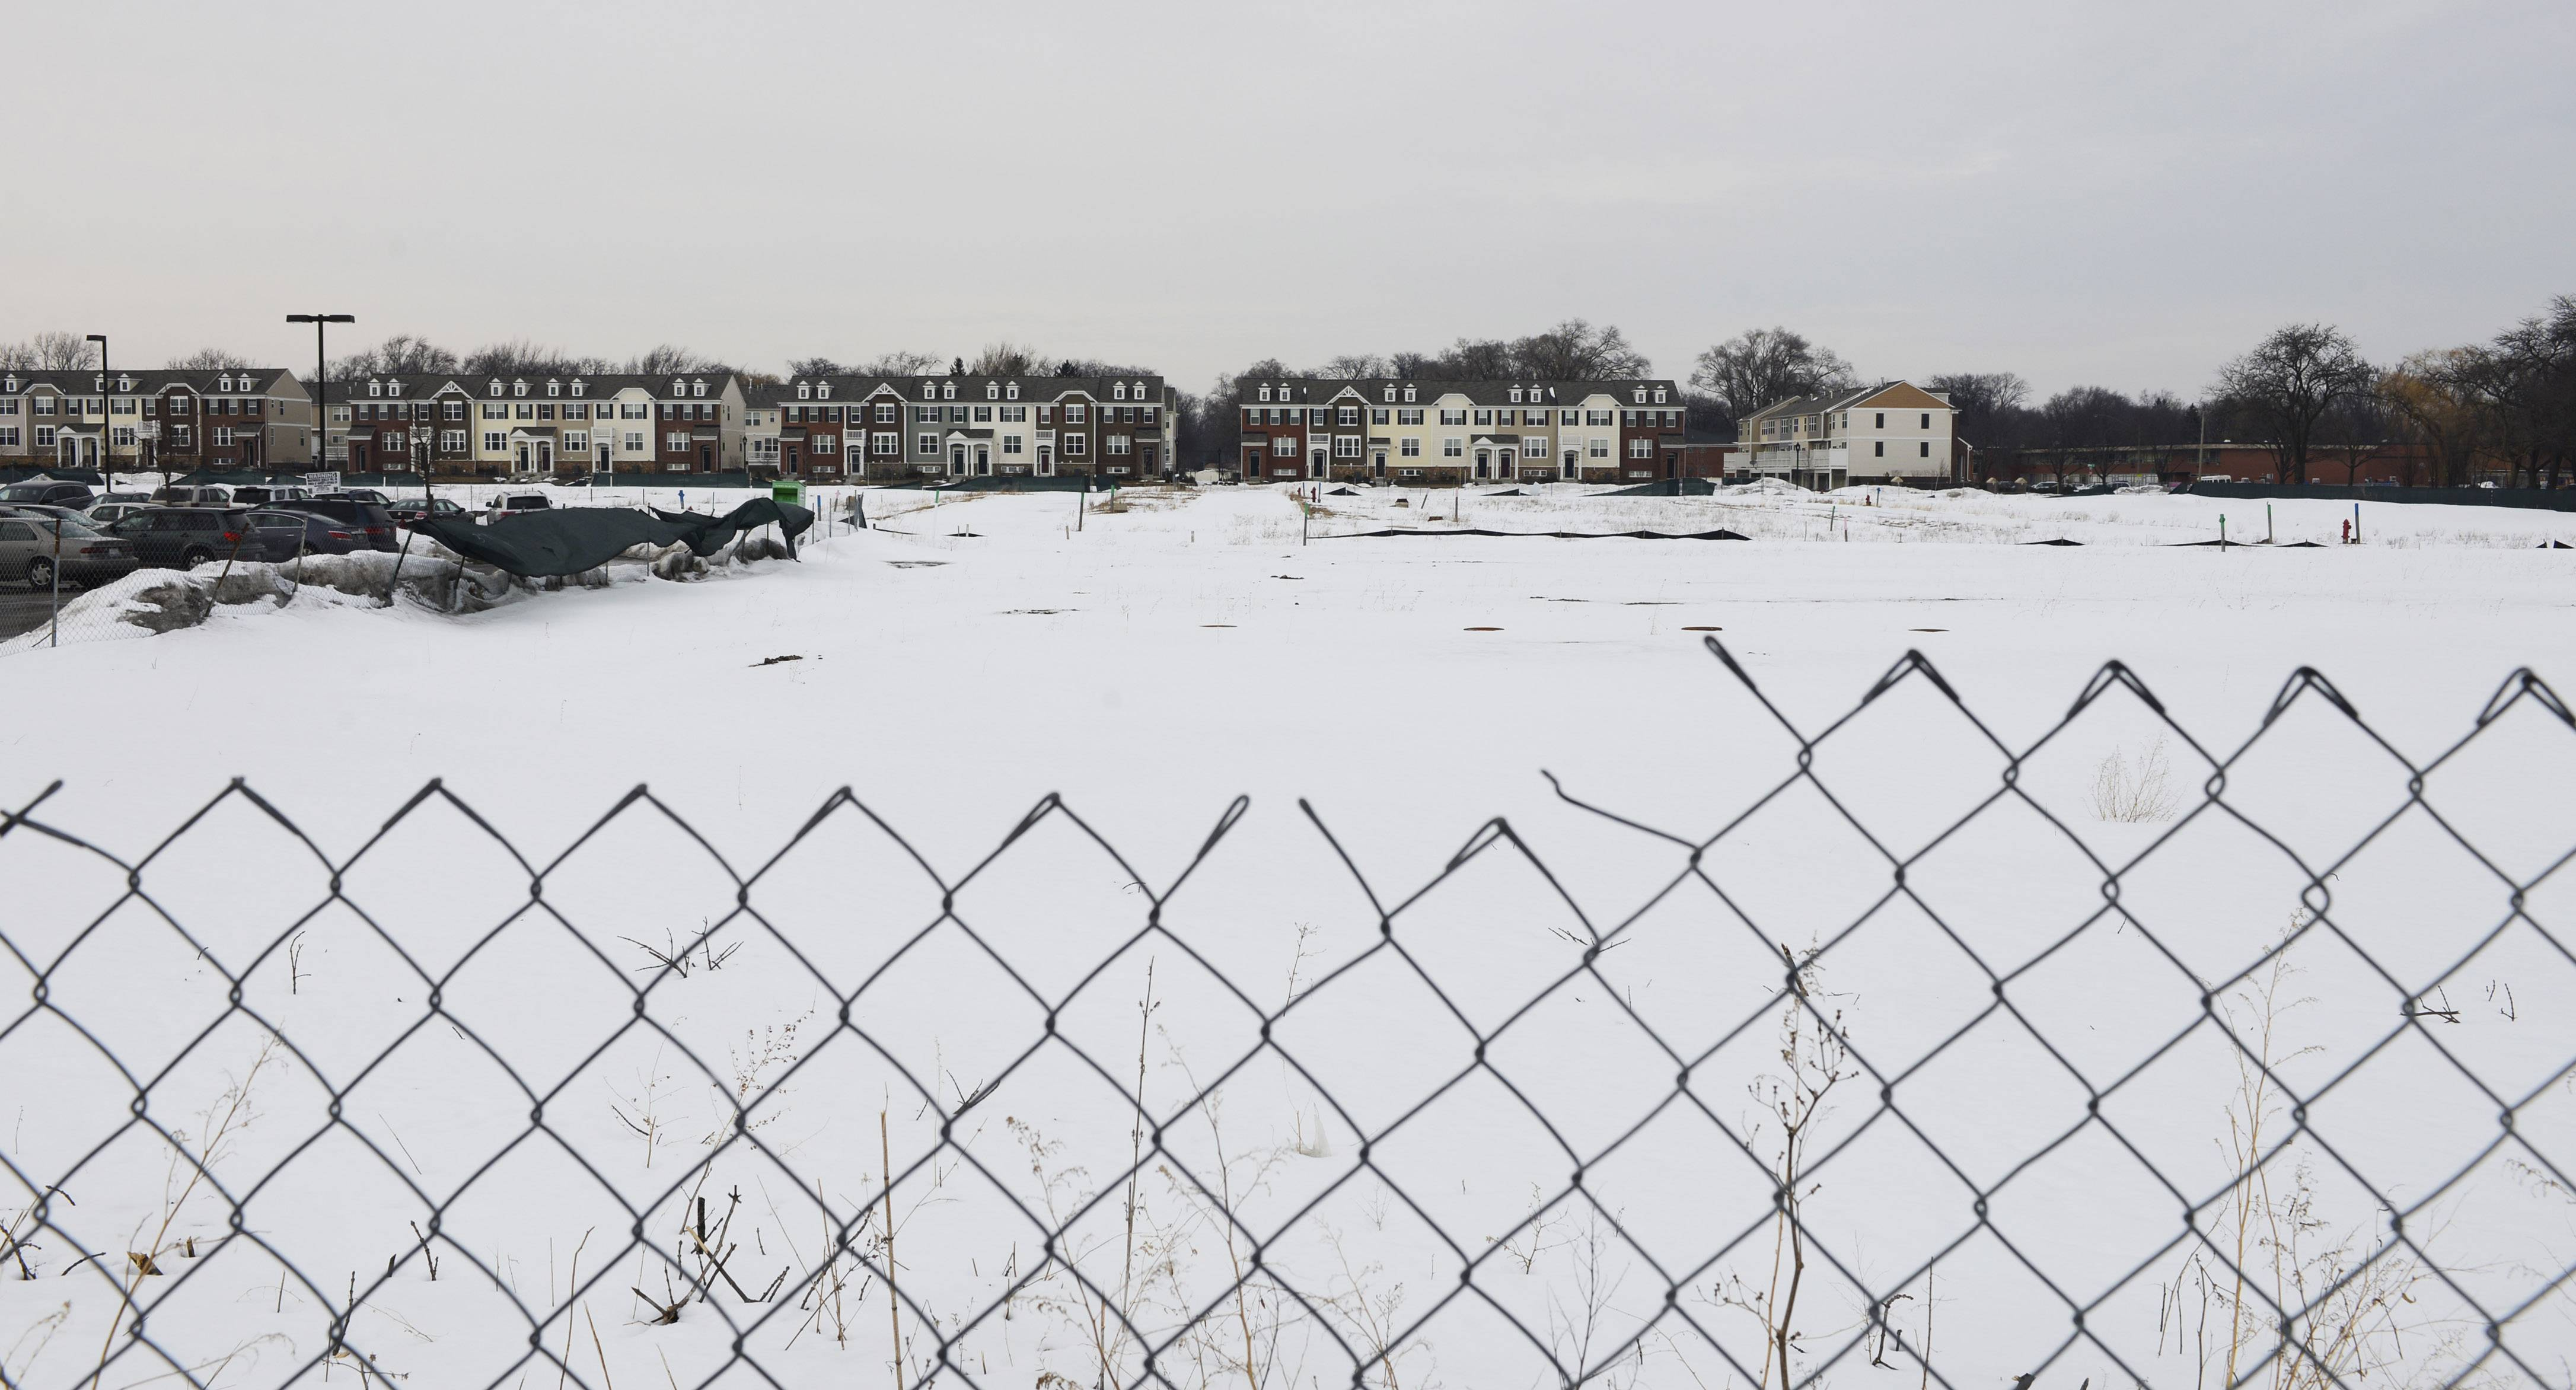 Developers are awaiting Arlington Heights village board approval to move forward with long-delayed plans to build single-family homes on the Arlington Market site near Dryden Place and Kensington Road.